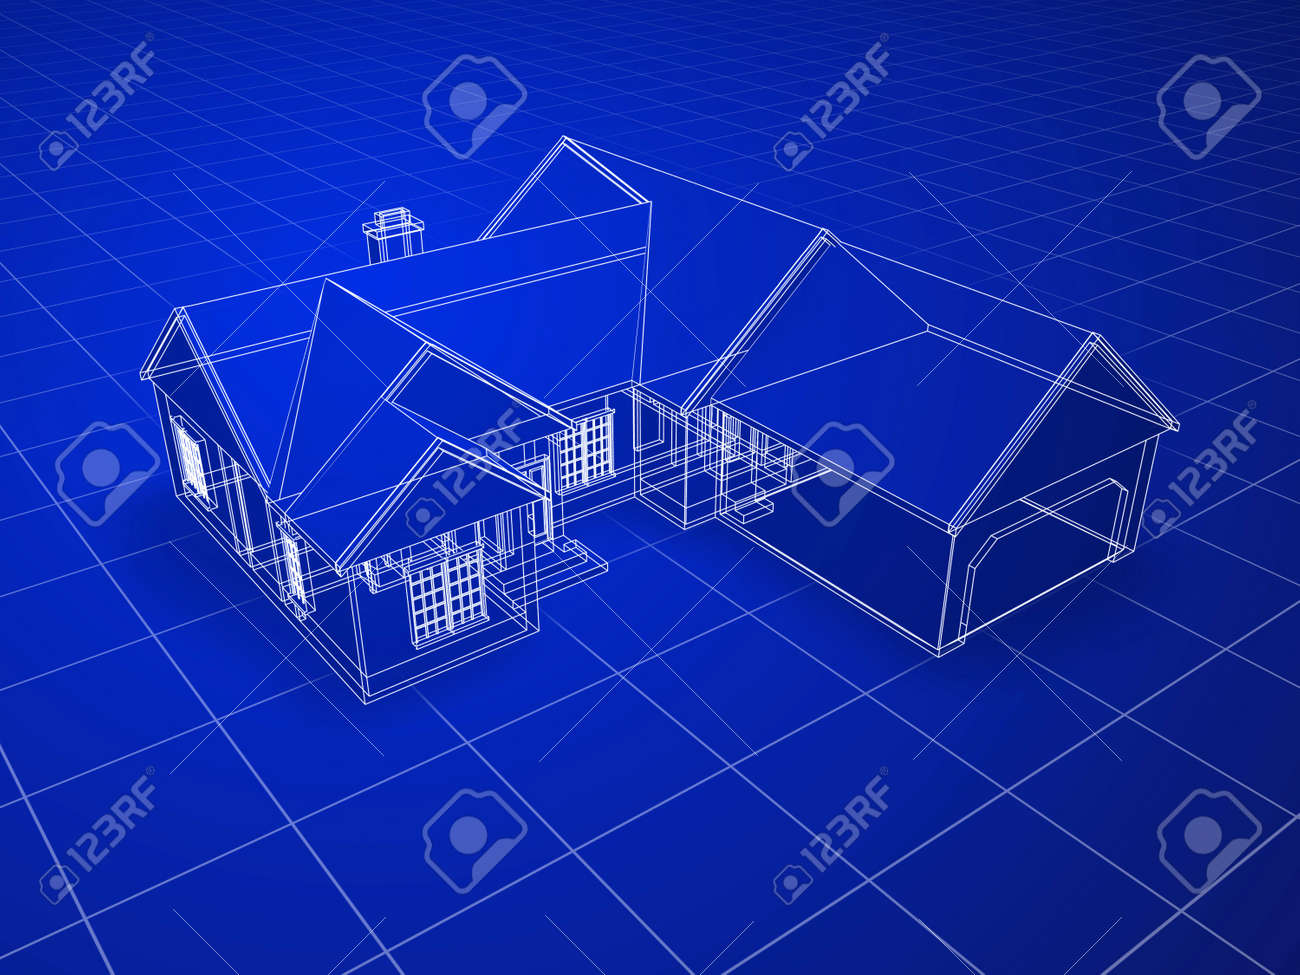 Blueprint style 3d rendered house white outlines on blue background blueprint style 3d rendered house white outlines on blue background stock photo 14637119 malvernweather Gallery